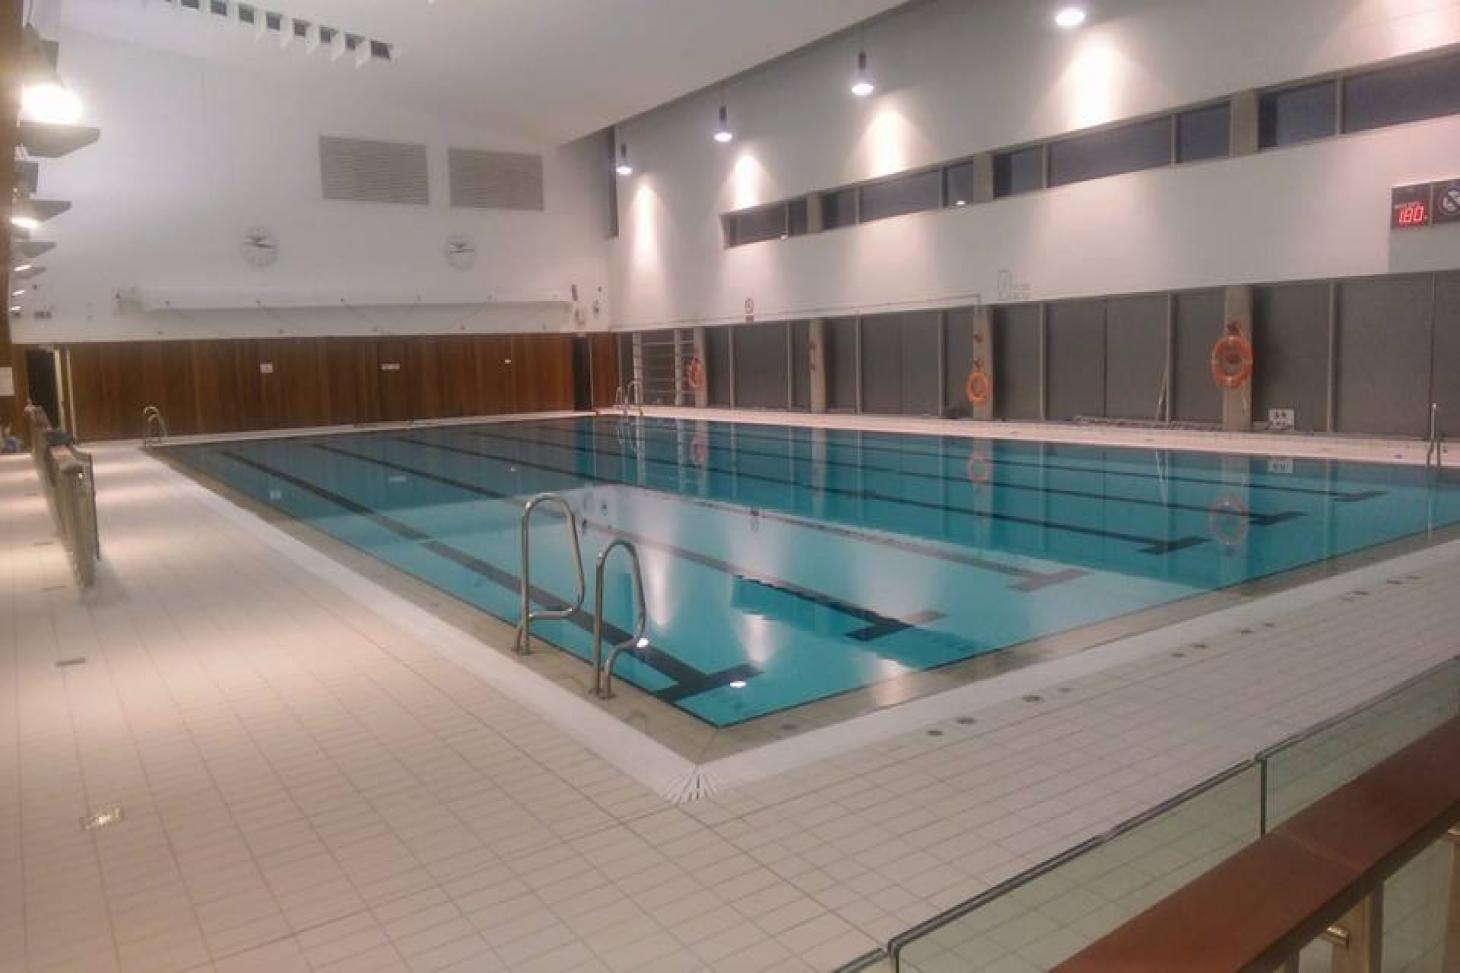 Ballyfermot Sports and Fitness Centre Indoor swimming pool